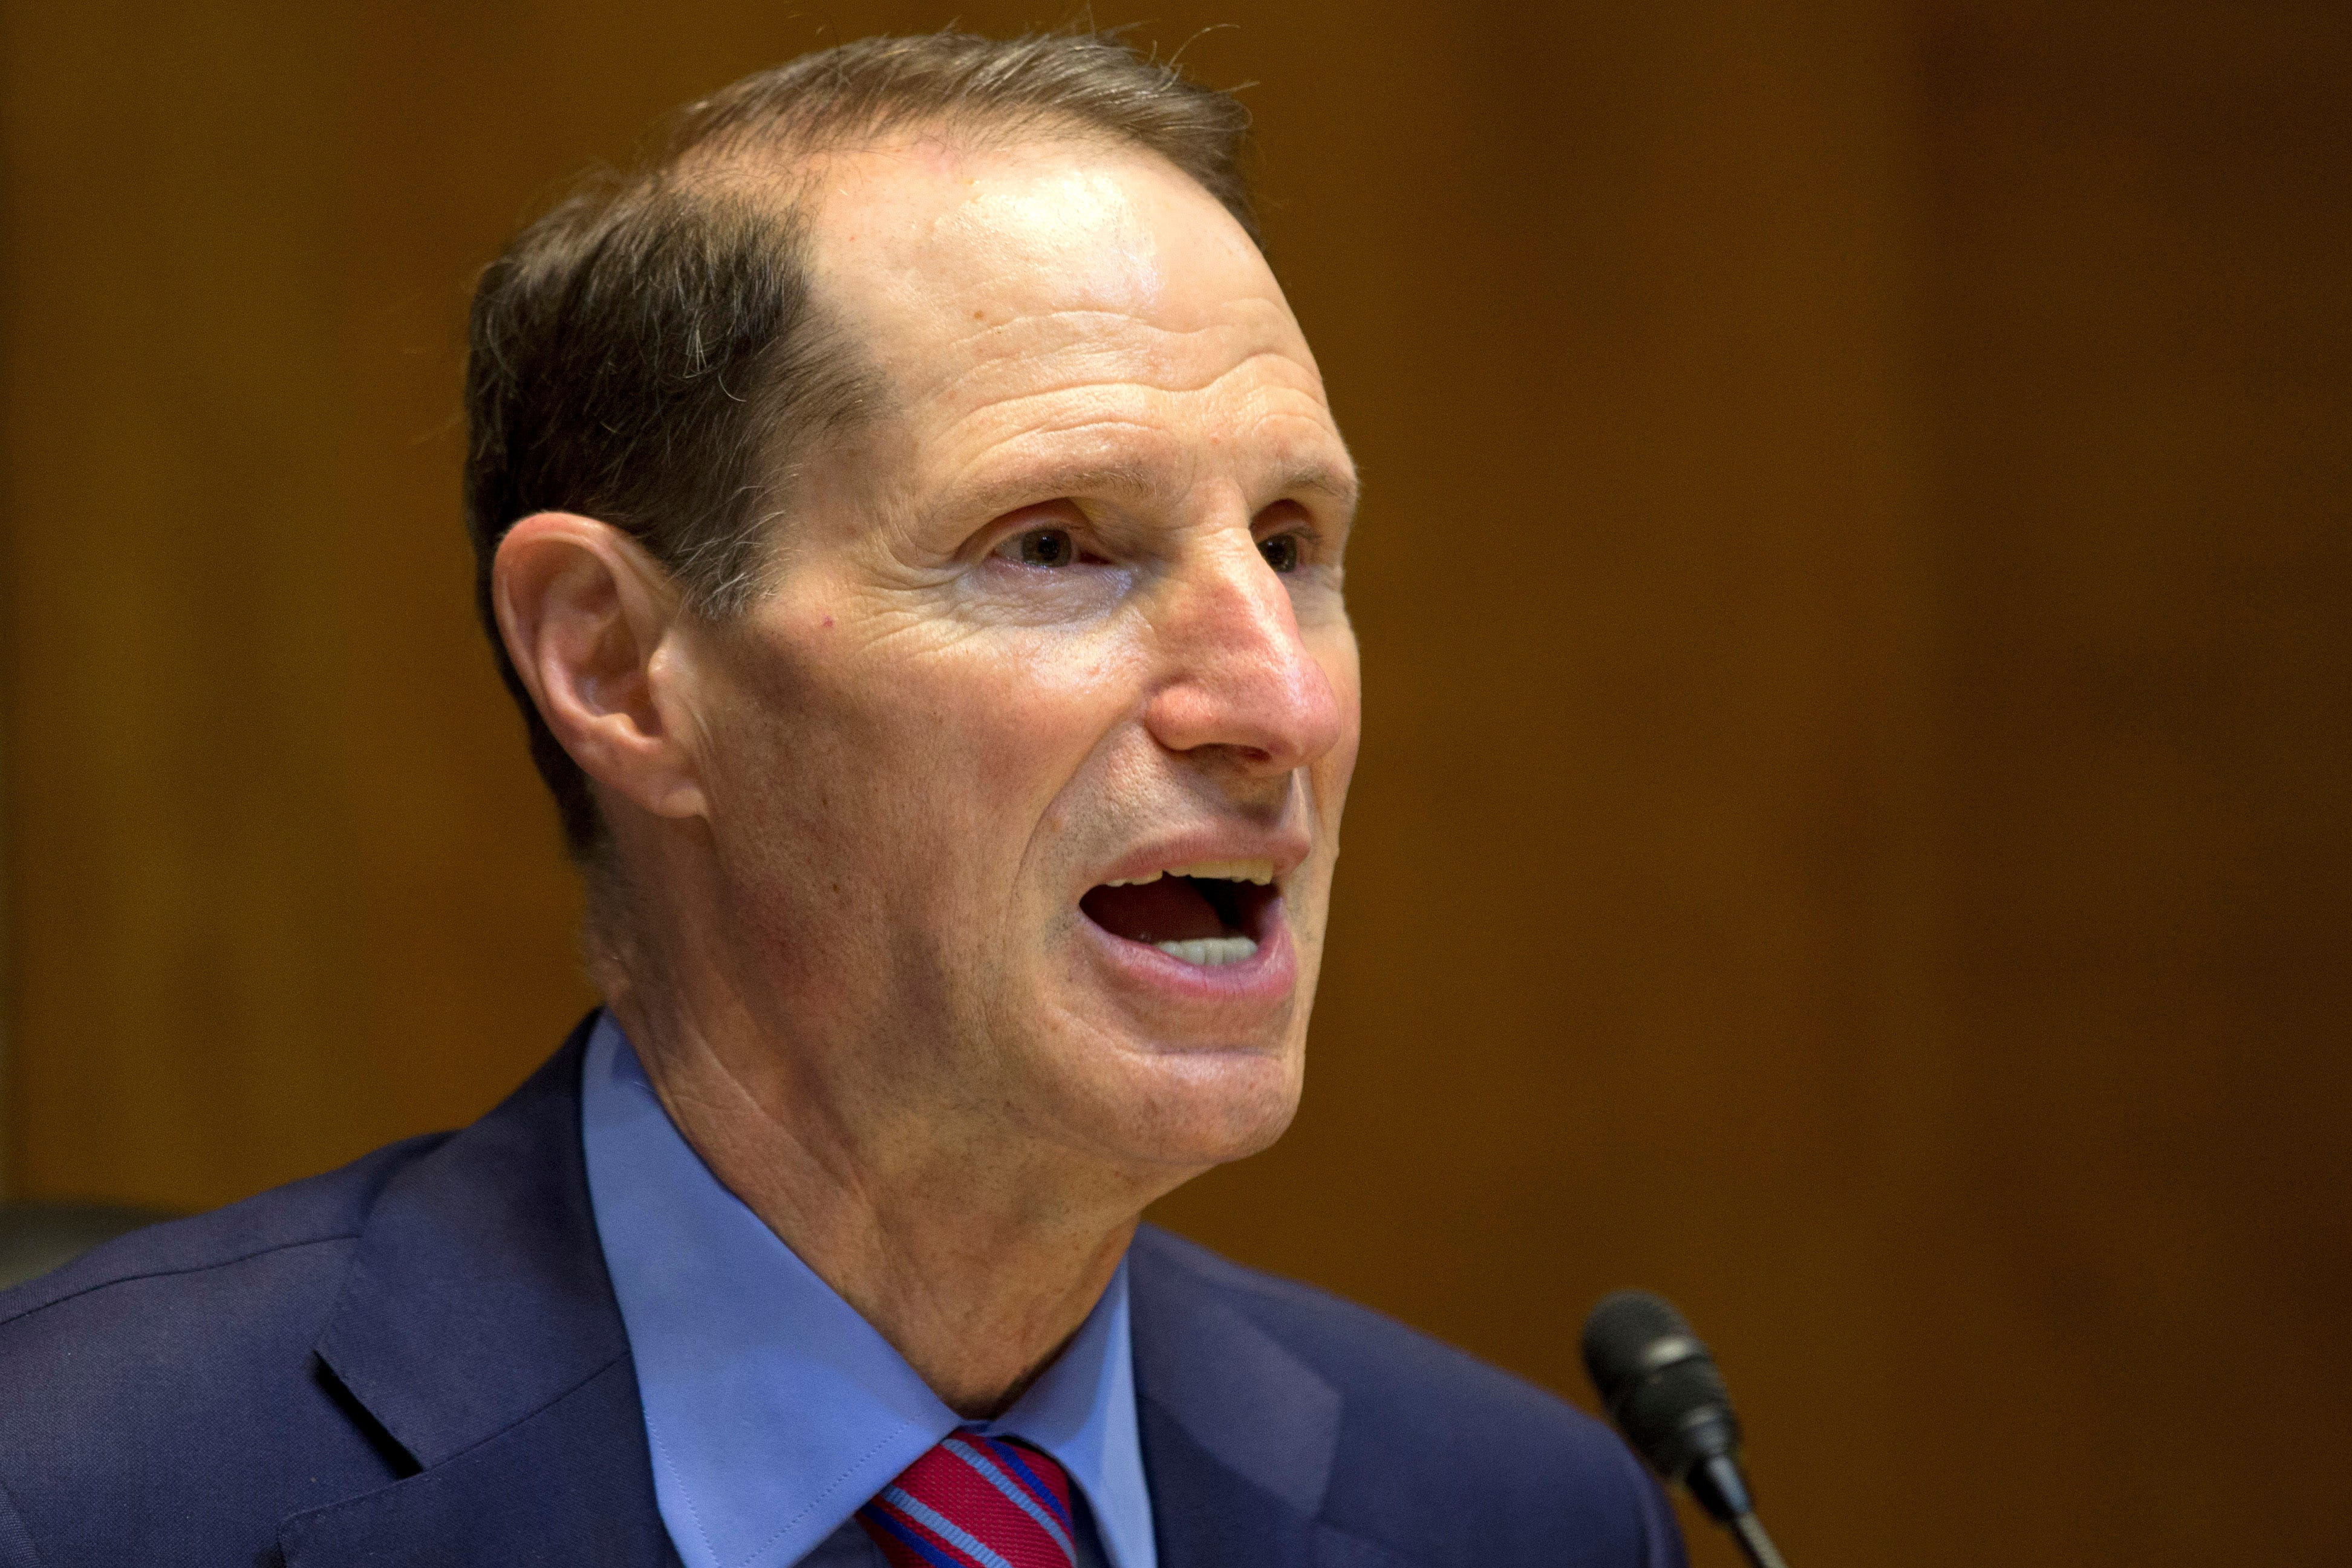 U.S. Sen. Ron Wyden, D-Oregon, speaks on Capitol Hill in Washington in this 2013 file photo.